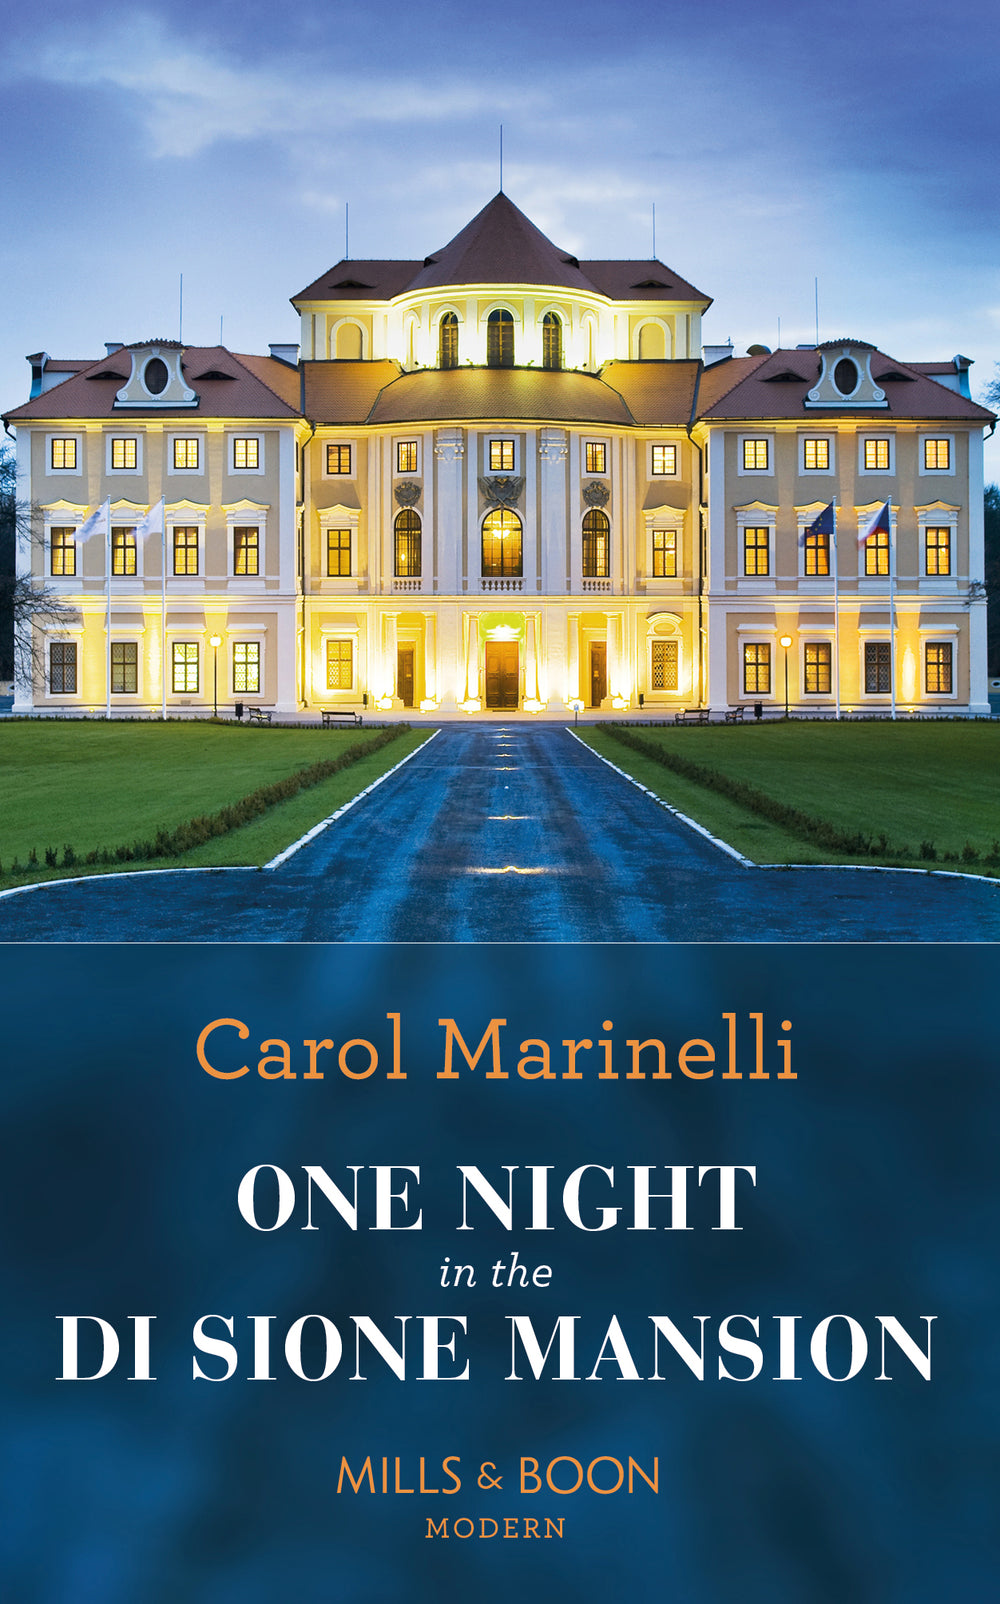 One Night in the Di Sione Mansion - Chapter 13